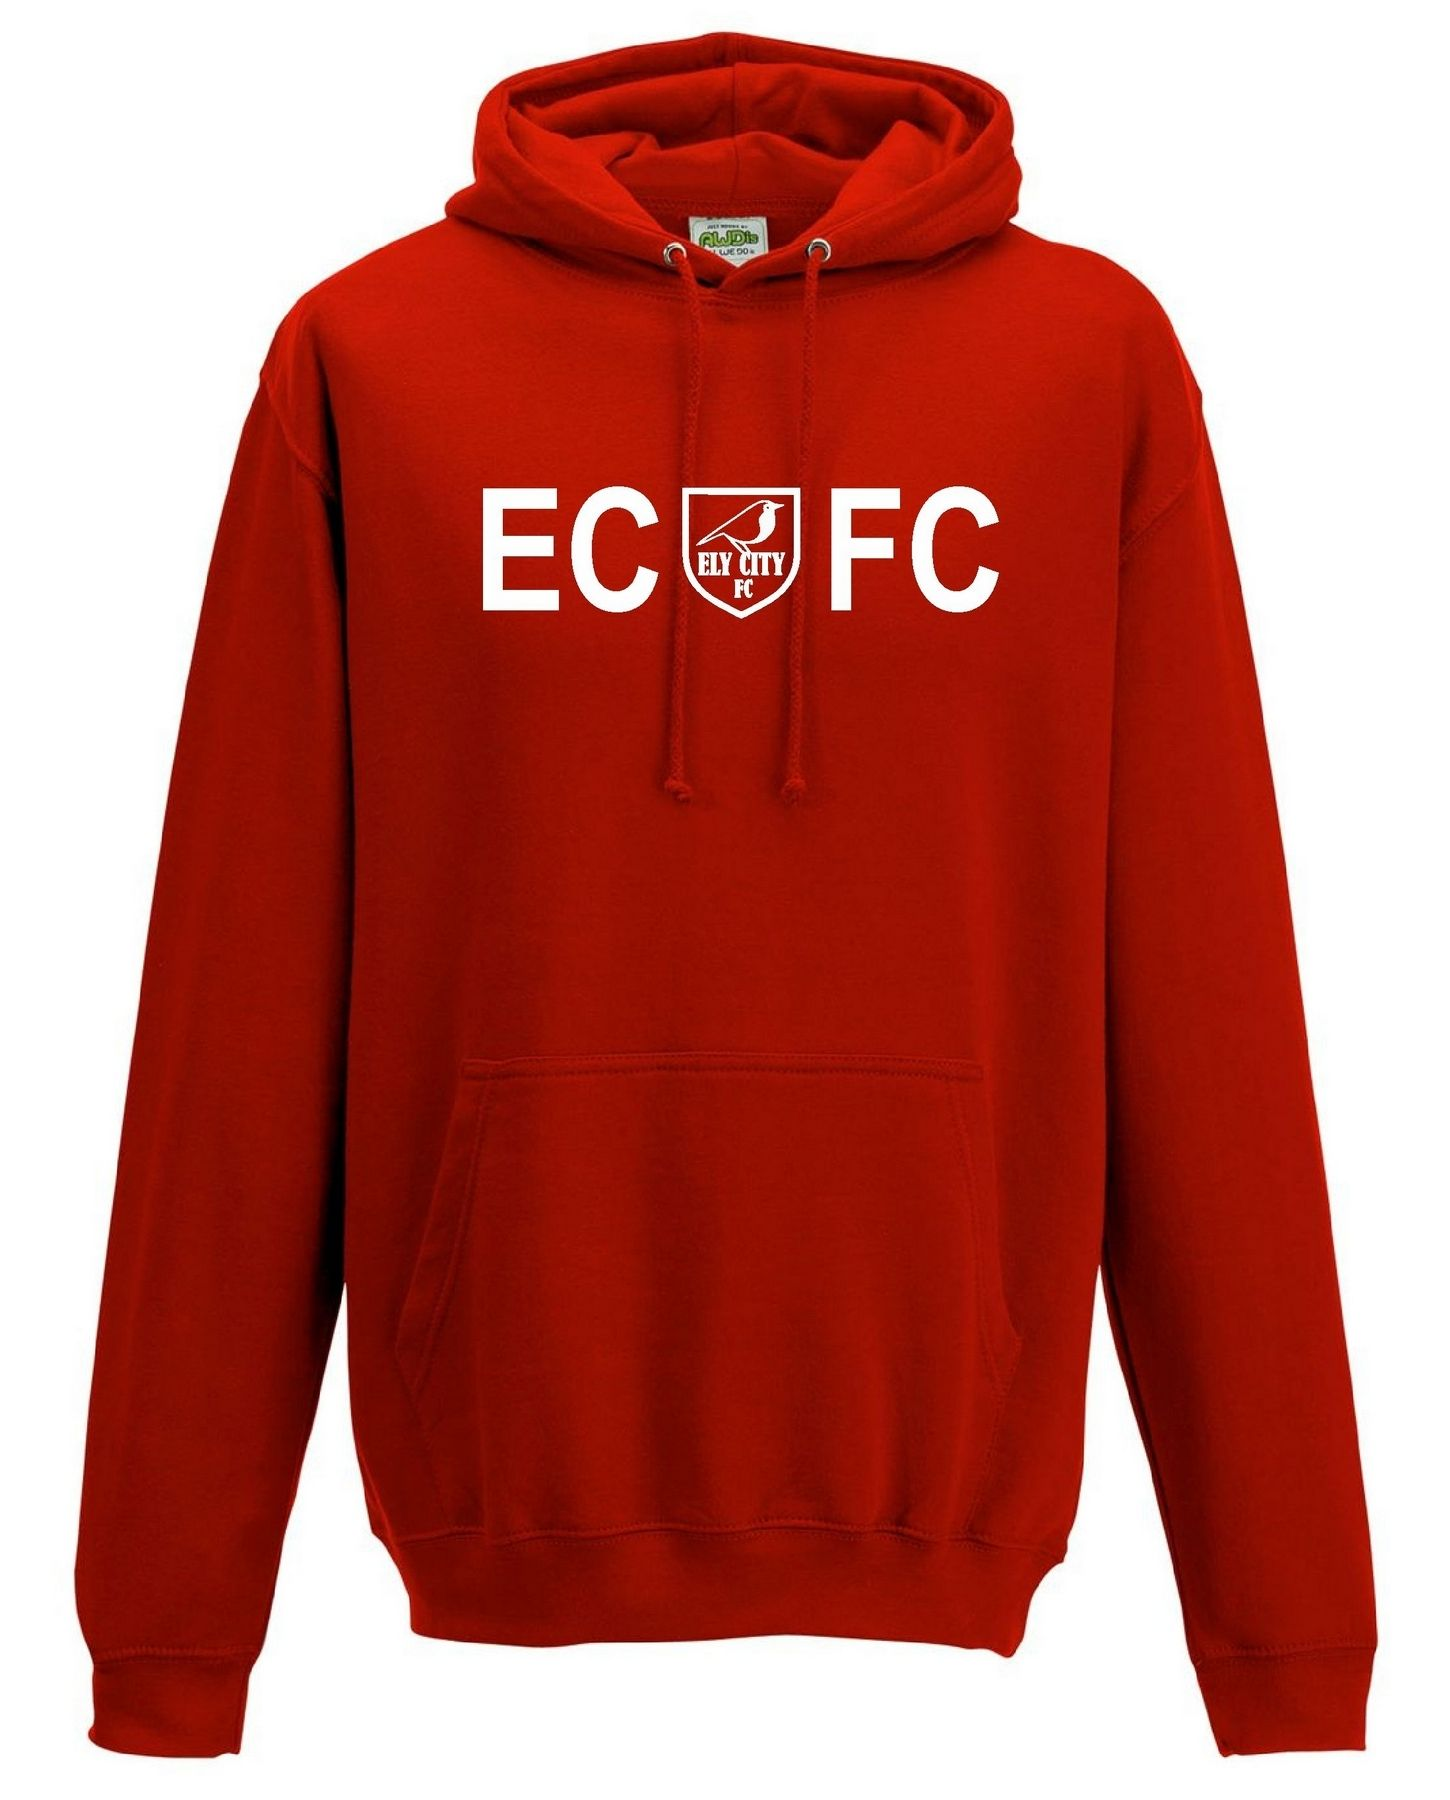 ECFC – Classic Hoodie in Red